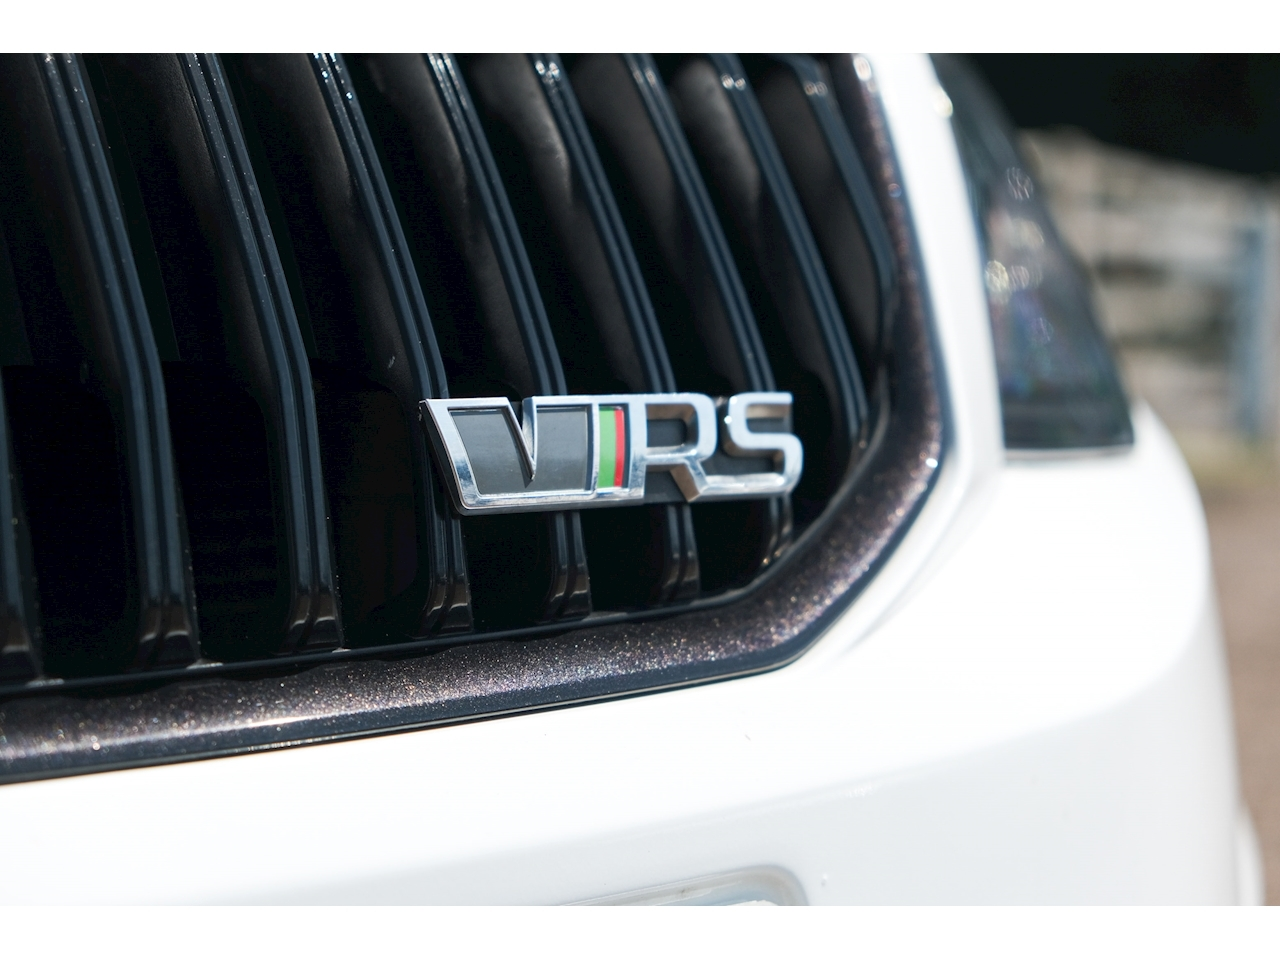 Skoda Octavia Vrs Tdi Cr Estate 2.0 Manual Diesel